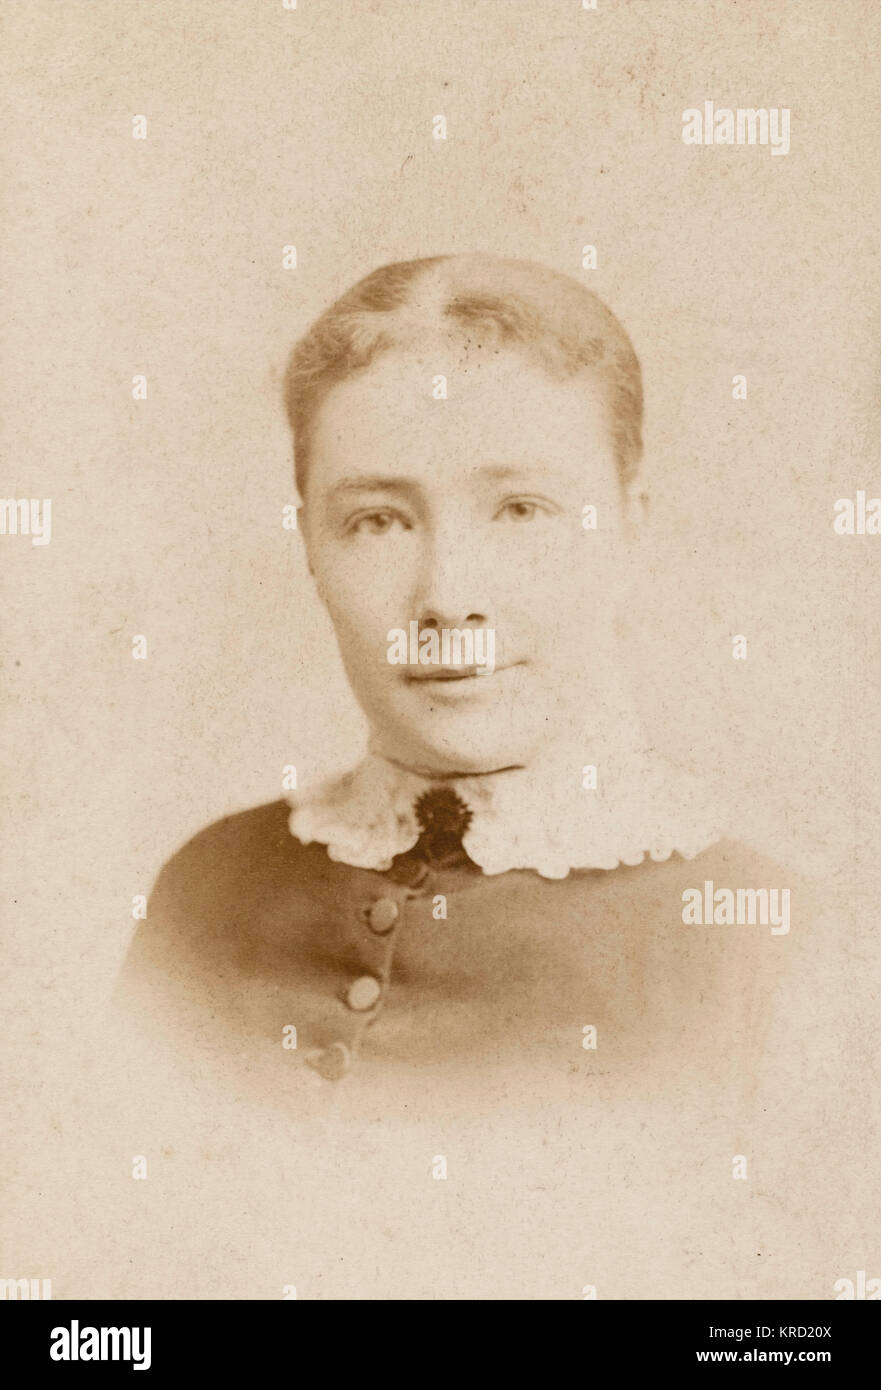 A young woman in a head and shoulders photograph, wearing a buttoned dress with a white collar.       Date: circa - Stock Image